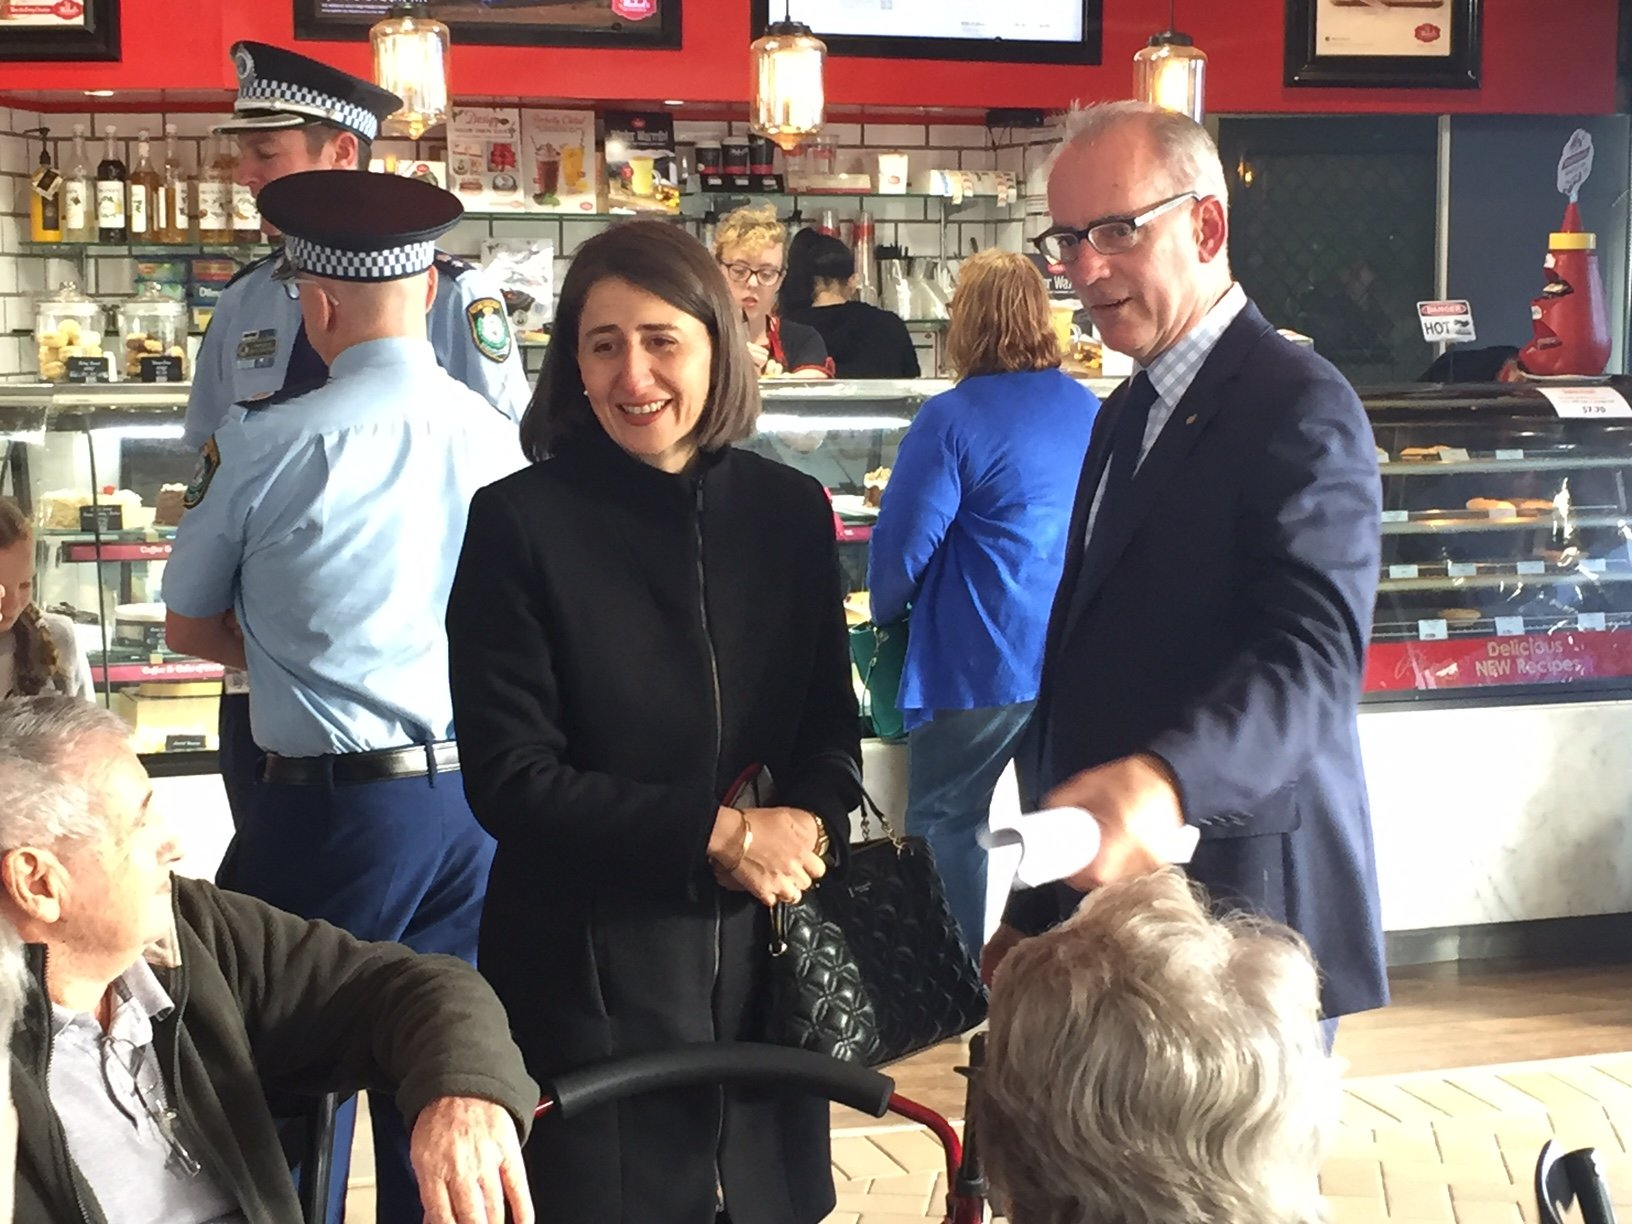 It was great to spend time with NSW Premier Gladys Berejiklian today, showing her around Lake Macquarie and bringing her up to speed with some of the issues we have here.